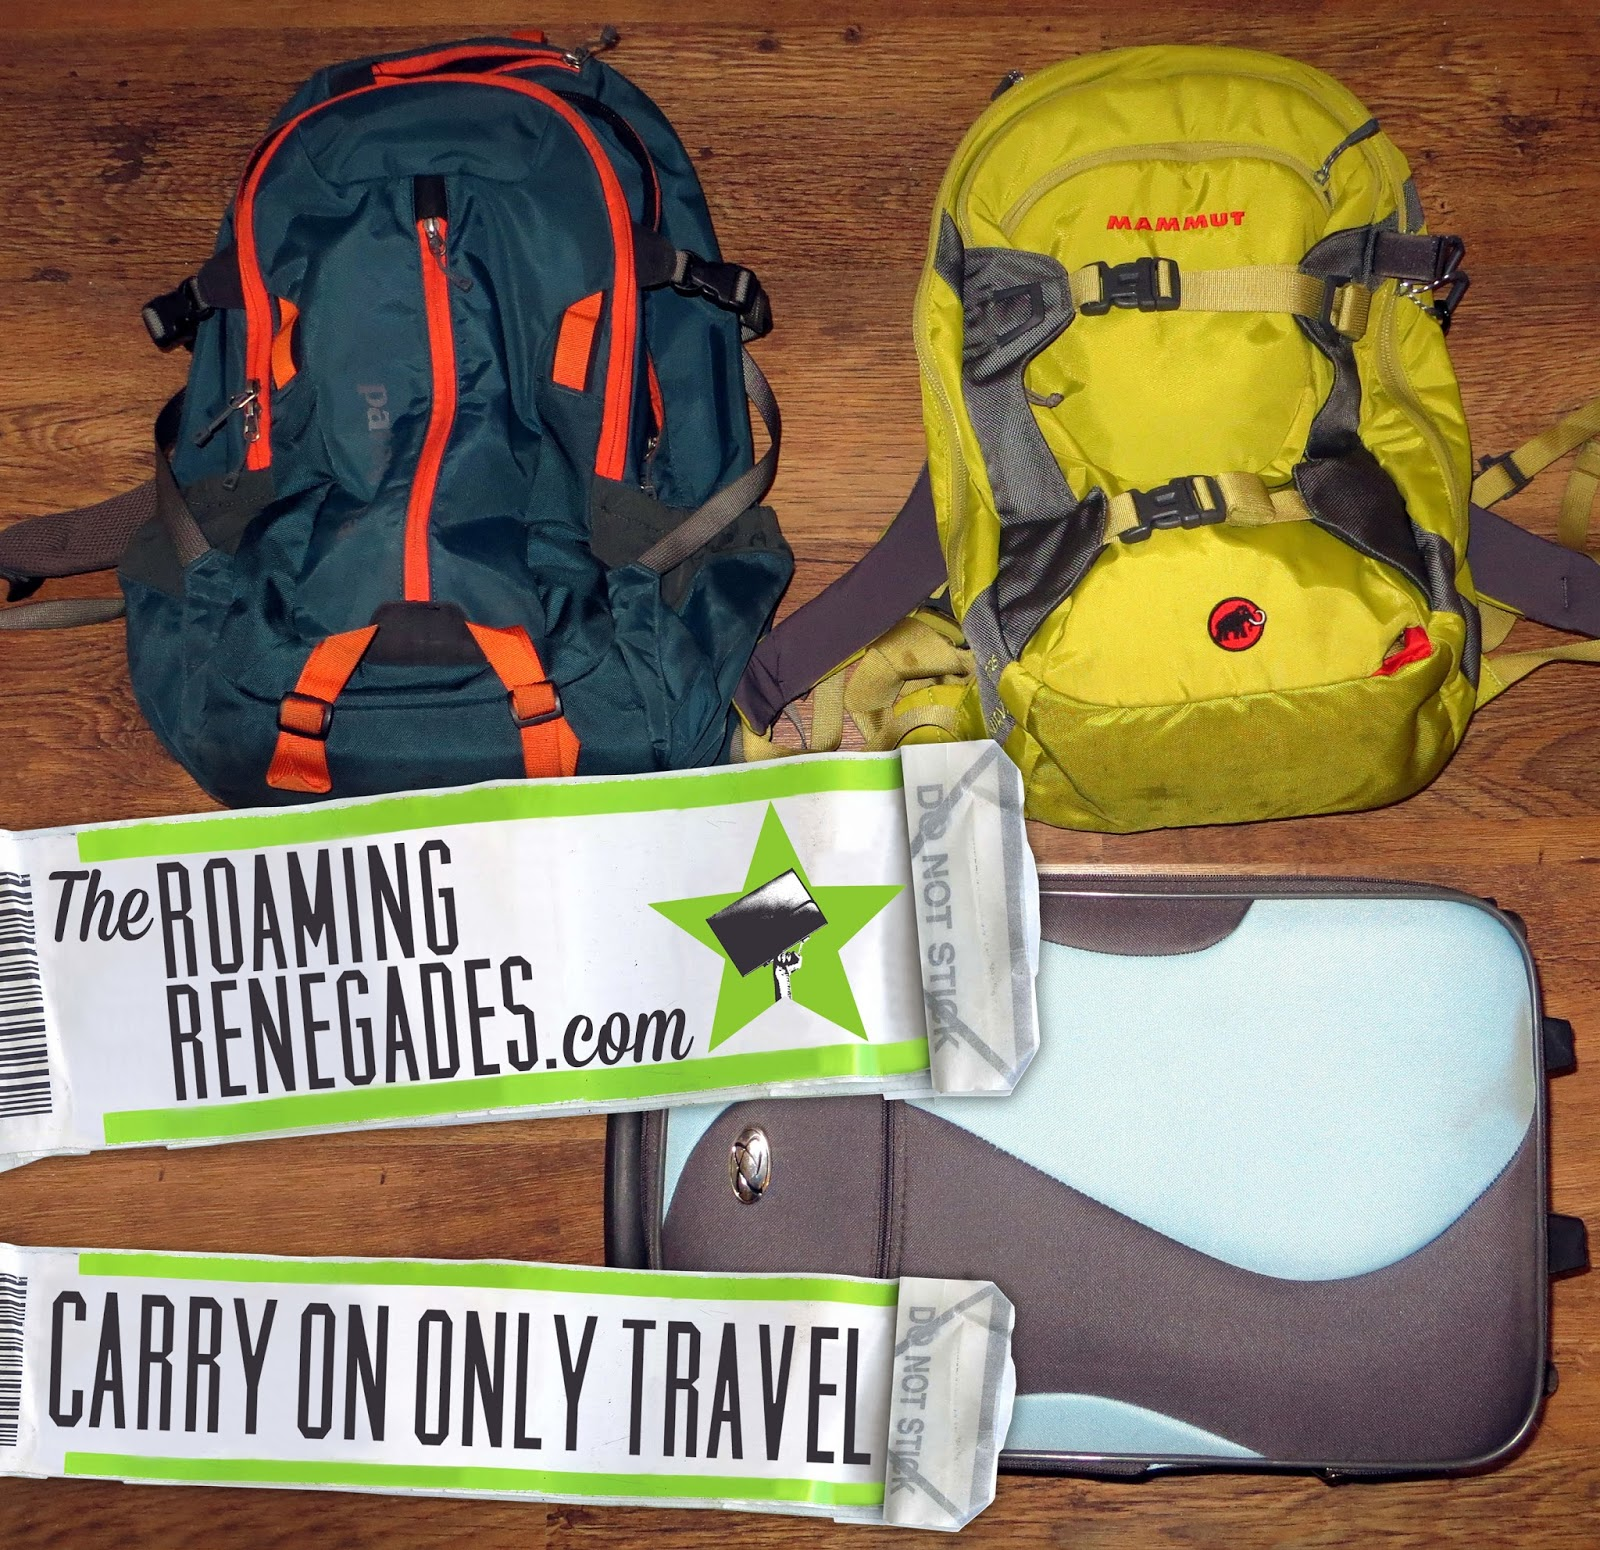 travelling light, traveling light, backpacking, carry on only, carry on for a week, carry on ryanair, carry on easyjet, carry on budget airlines, carry on bags, traveling light,